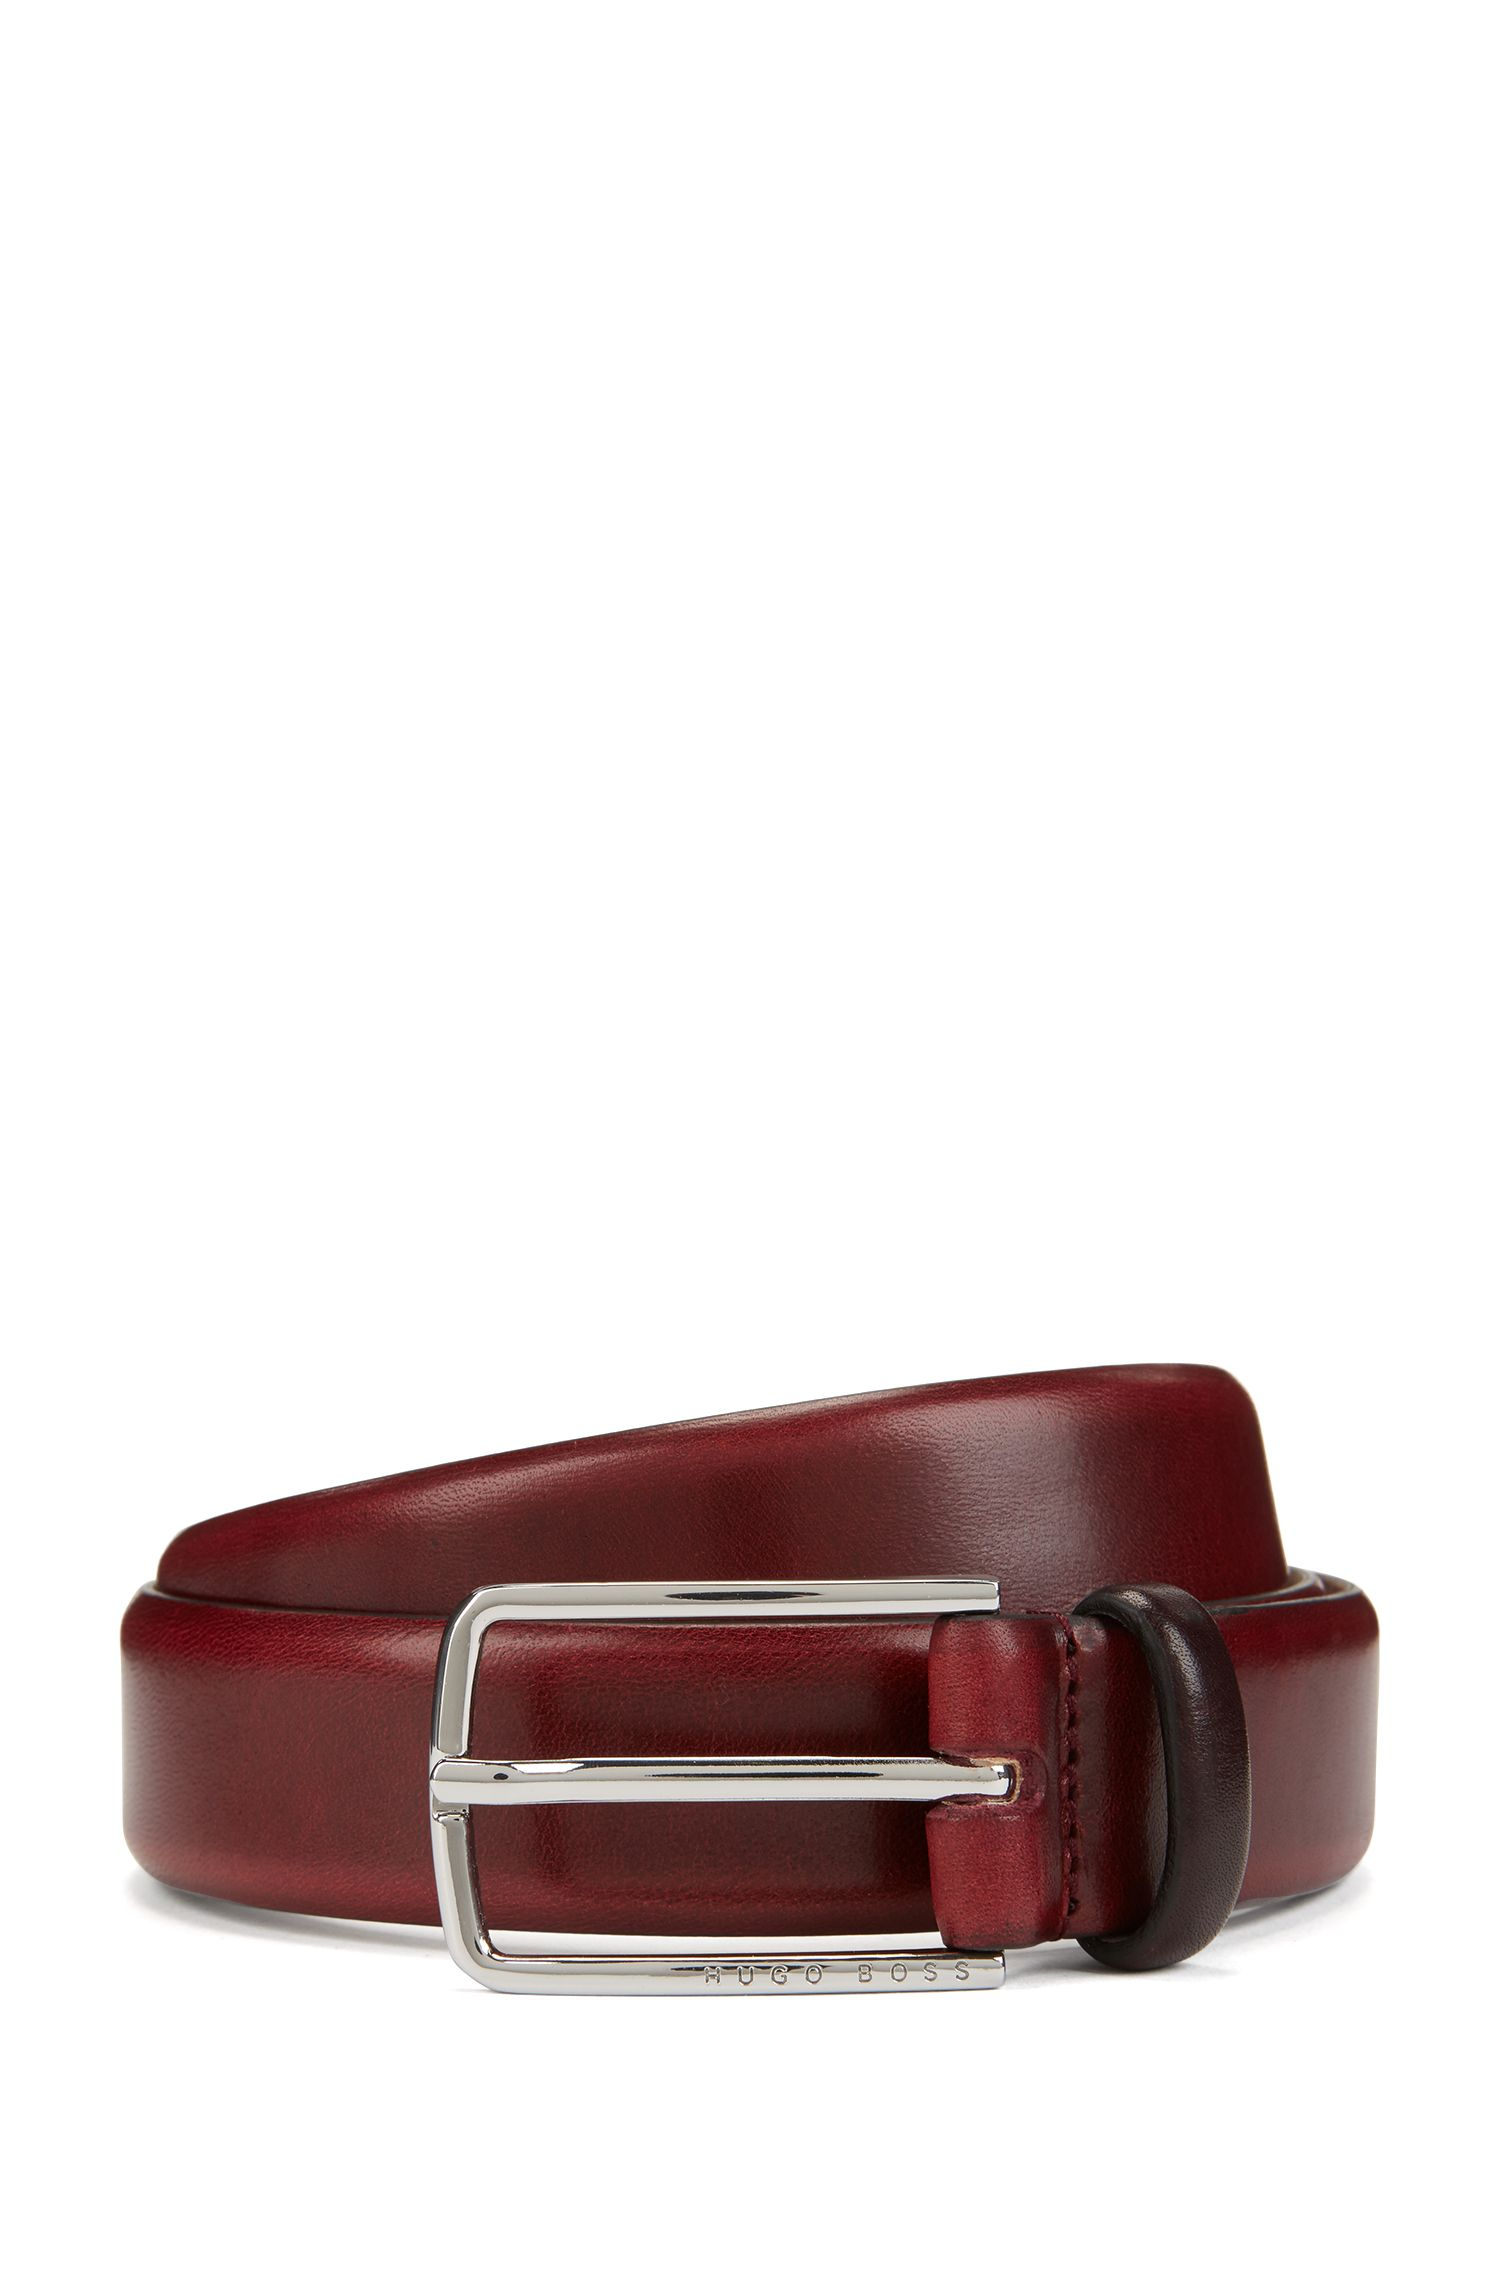 Vegetable-tanned leather belt with signature buckle